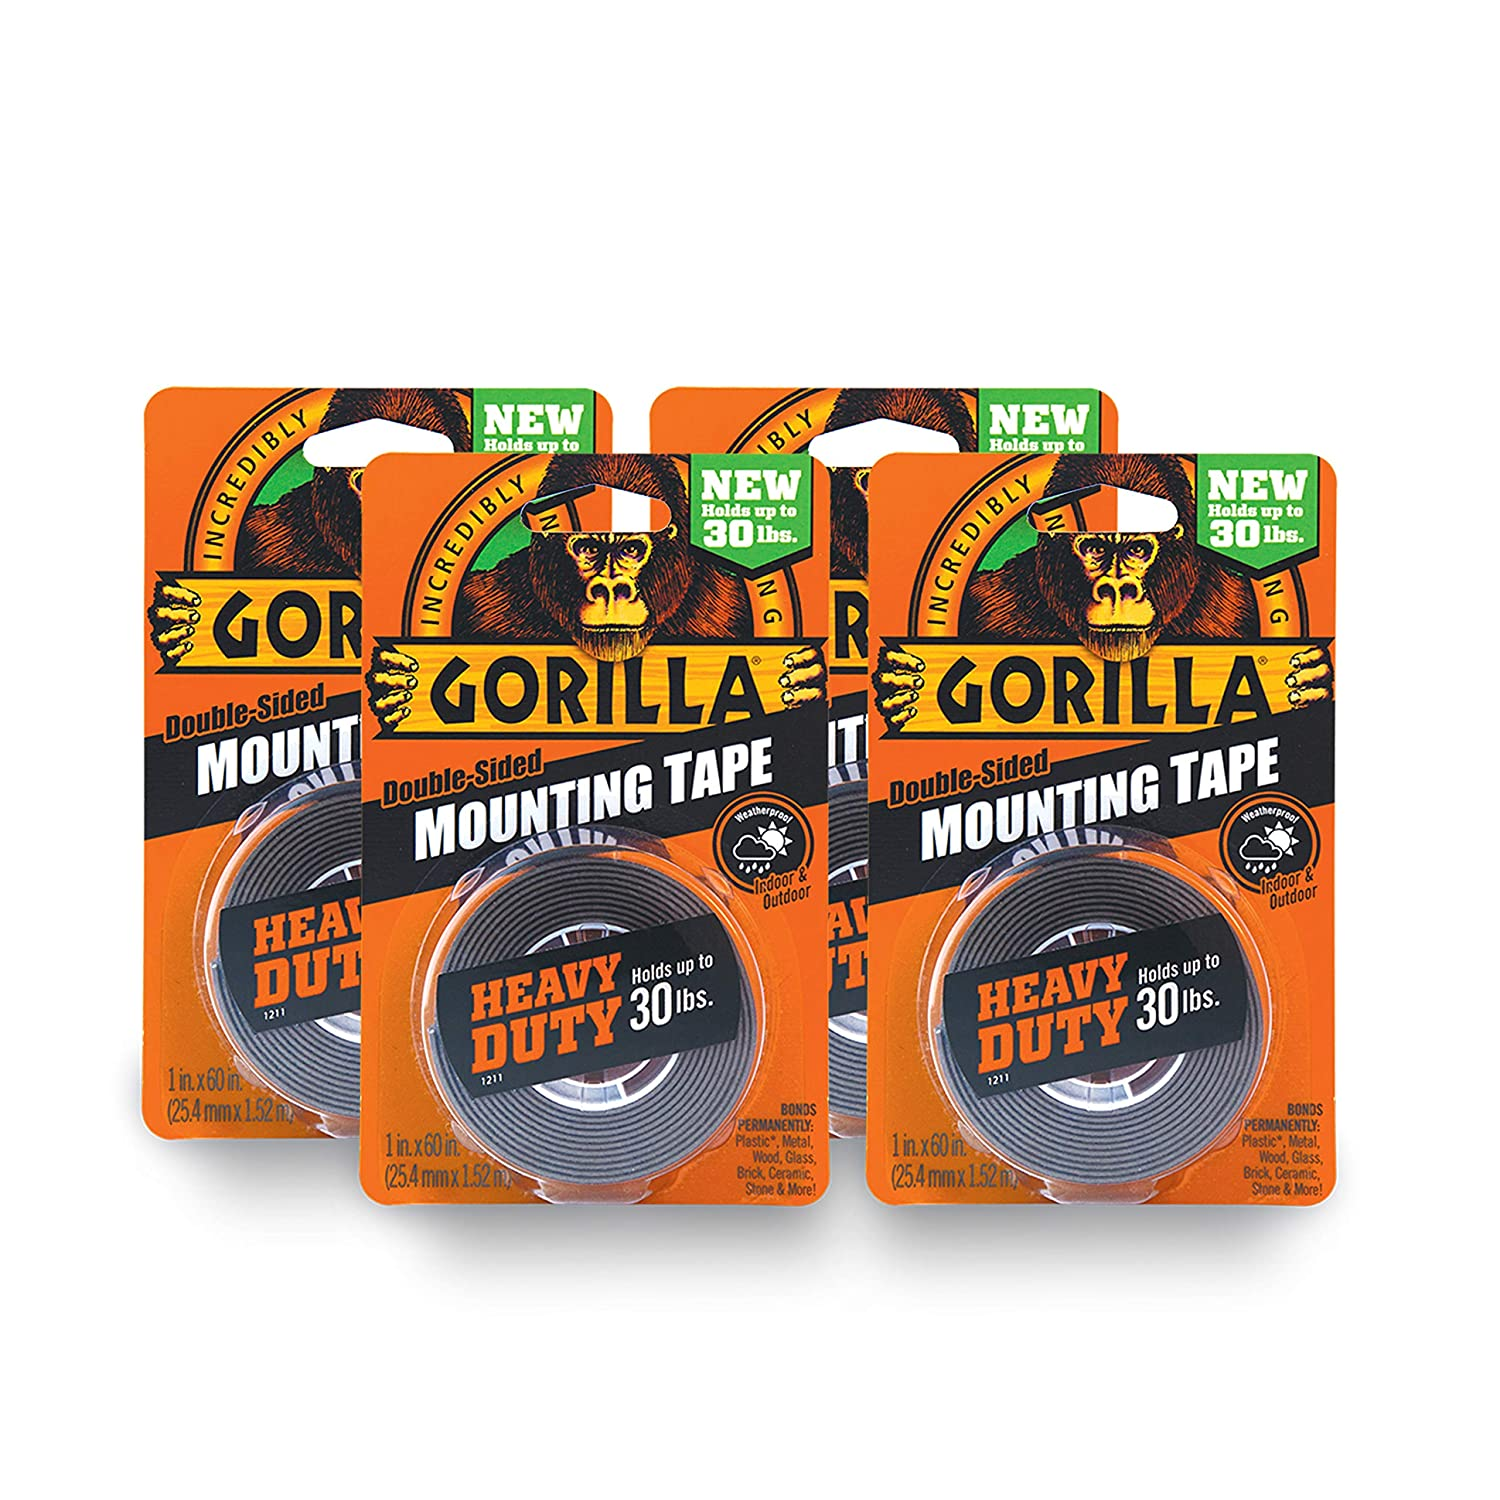 Gorilla Heavy Duty Double Sided Mounting Tape, 1 Inch x 60 Inches, Black Gorilla Glue 6055001